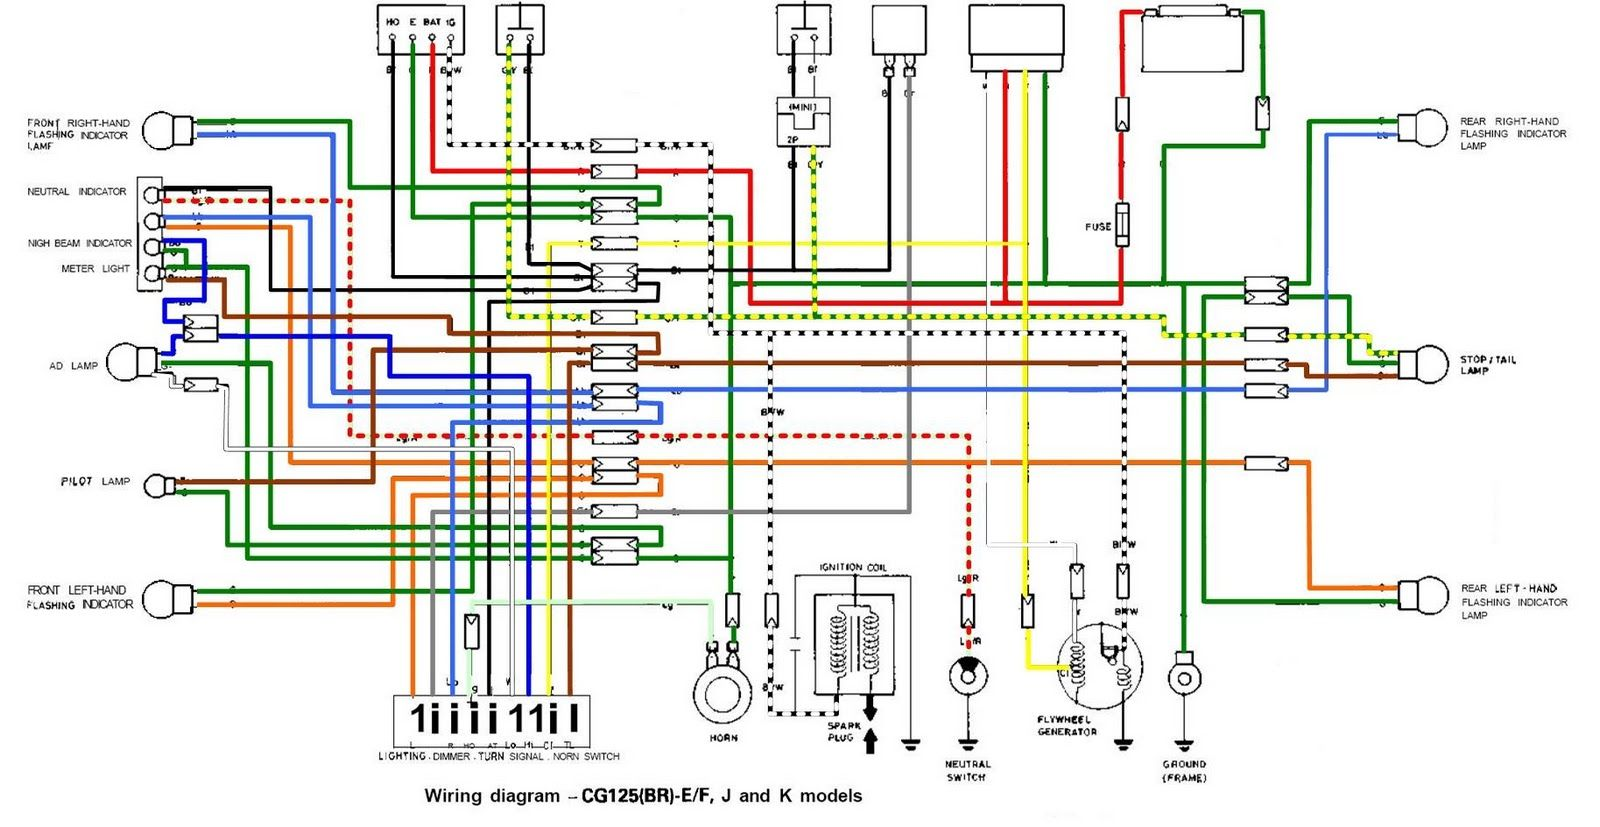 hight resolution of honda cg 125 wiring diagram best wiring diagram honda 125 motorcycle ignition wiring